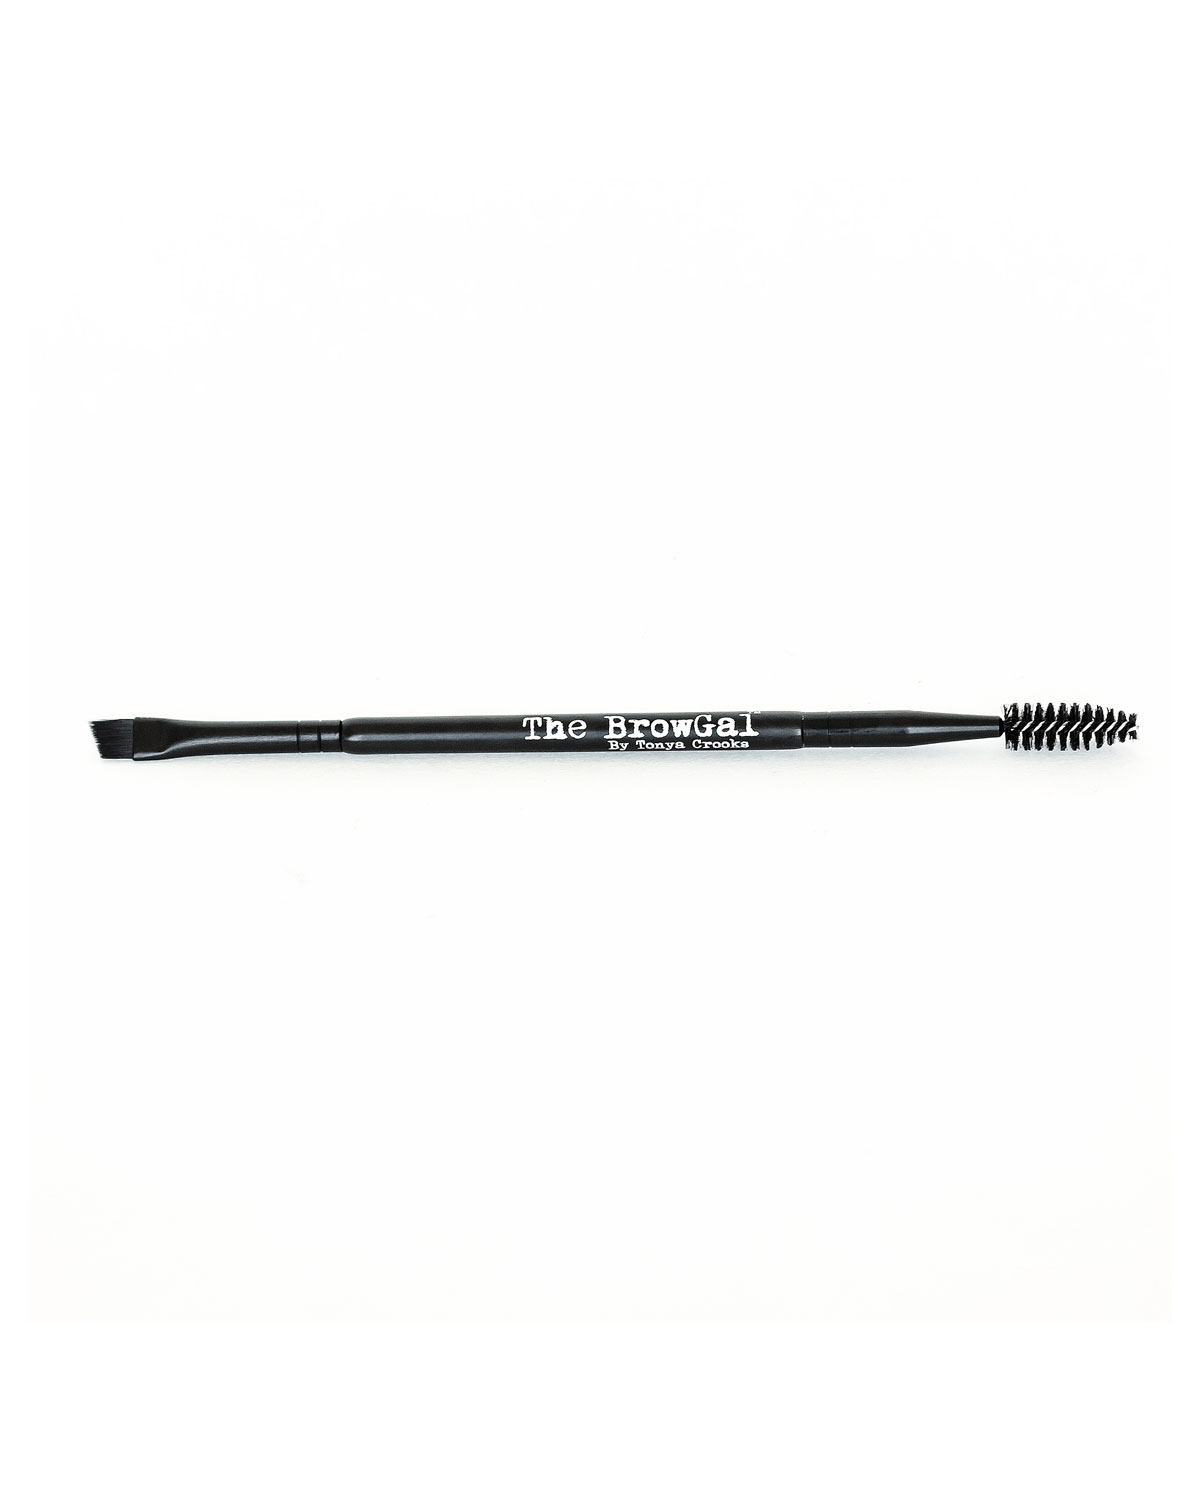 THE BROW GAL Eyebrow Brush With Spoolie